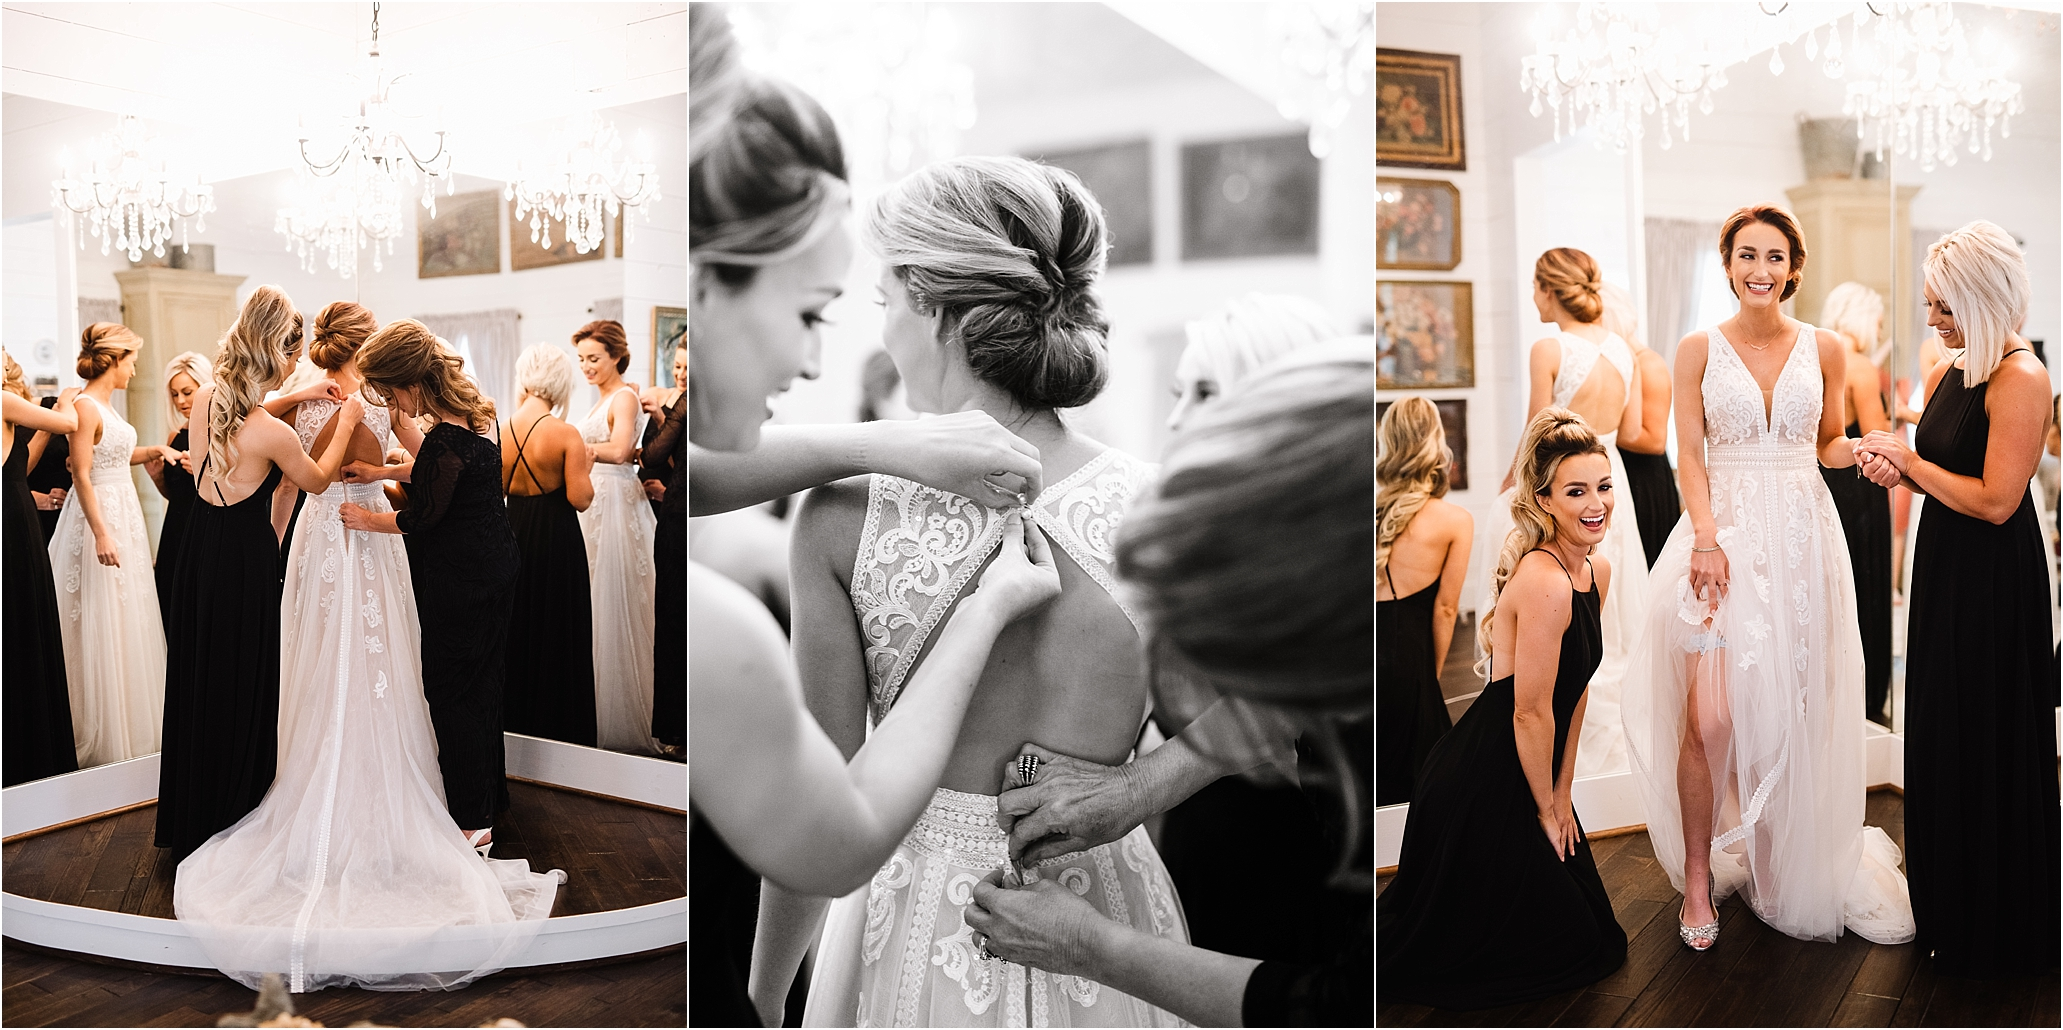 PattisonHouse_TexasWeddingPhotographer_CarlyCrockett&MattBrownWedding_0055.jpg